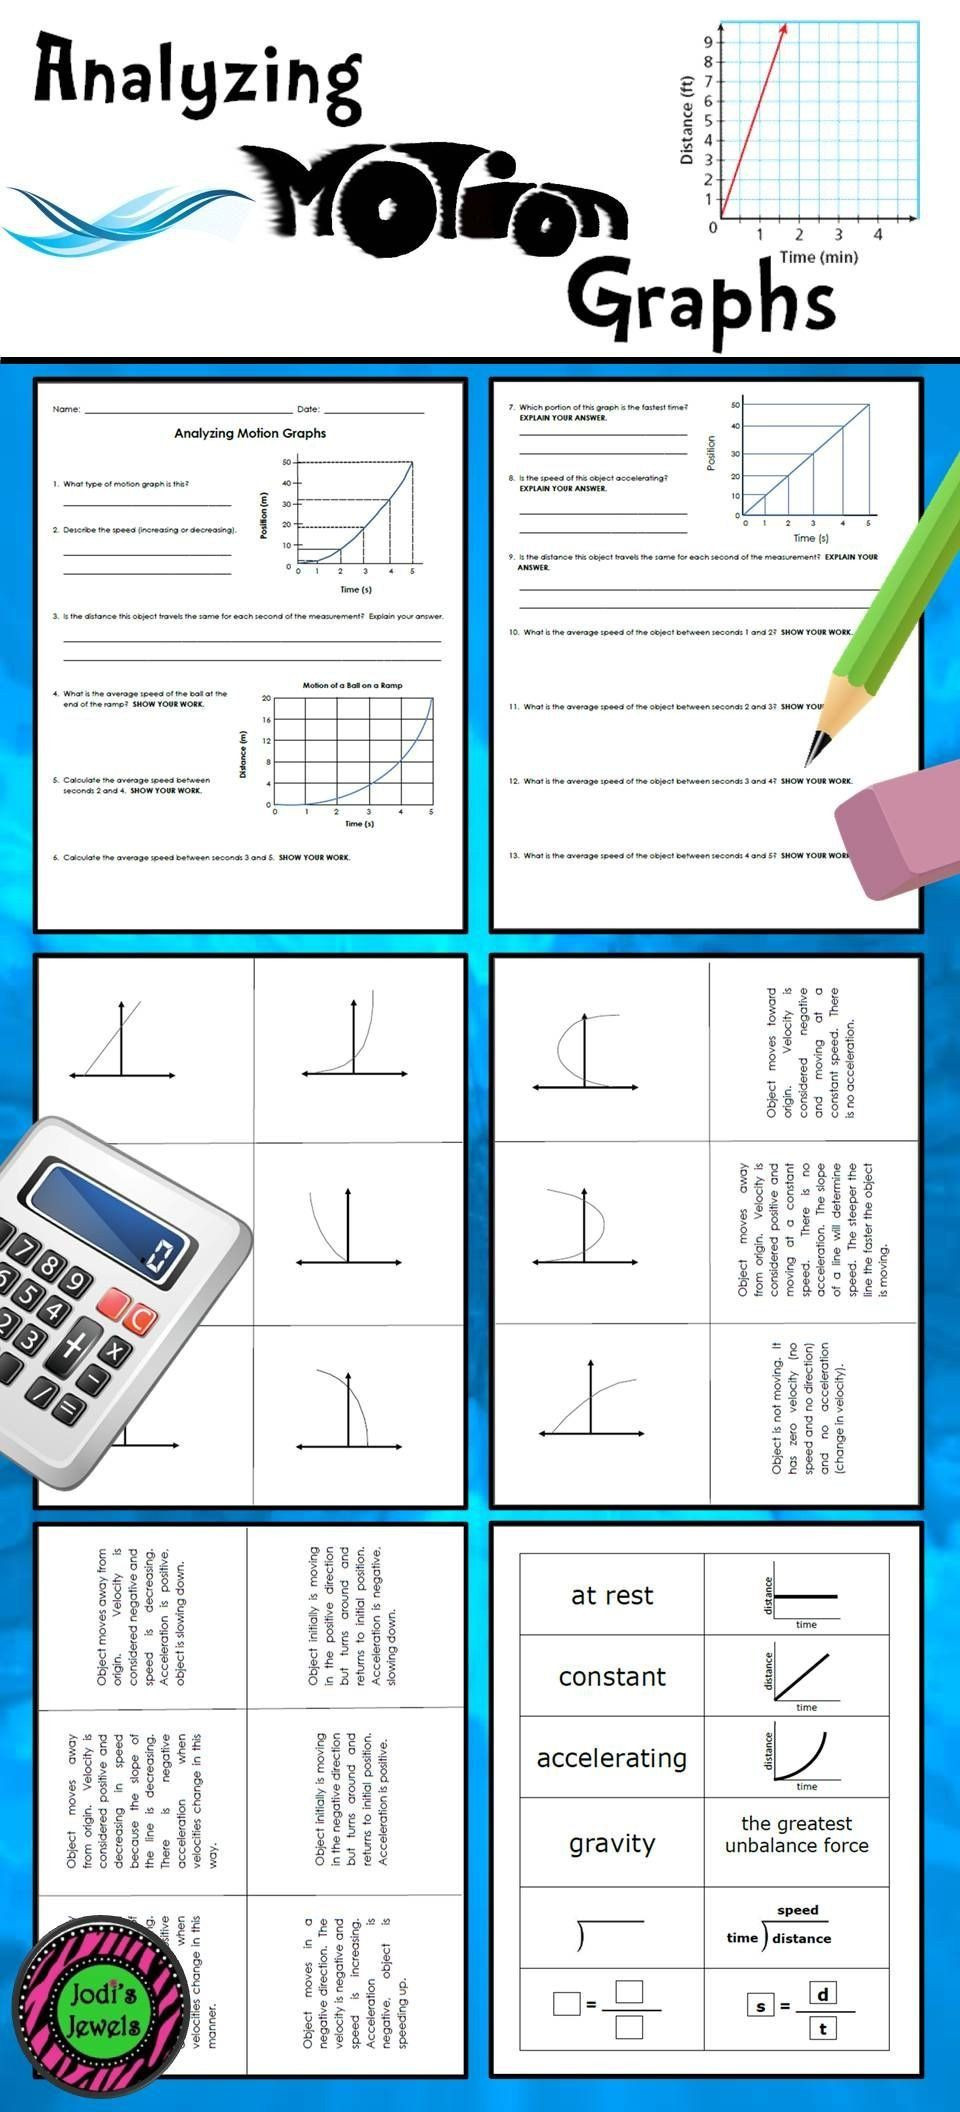 Motion Graphs Worksheet Answers Motion Graphs Worksheet Answer Key Students Will Practice